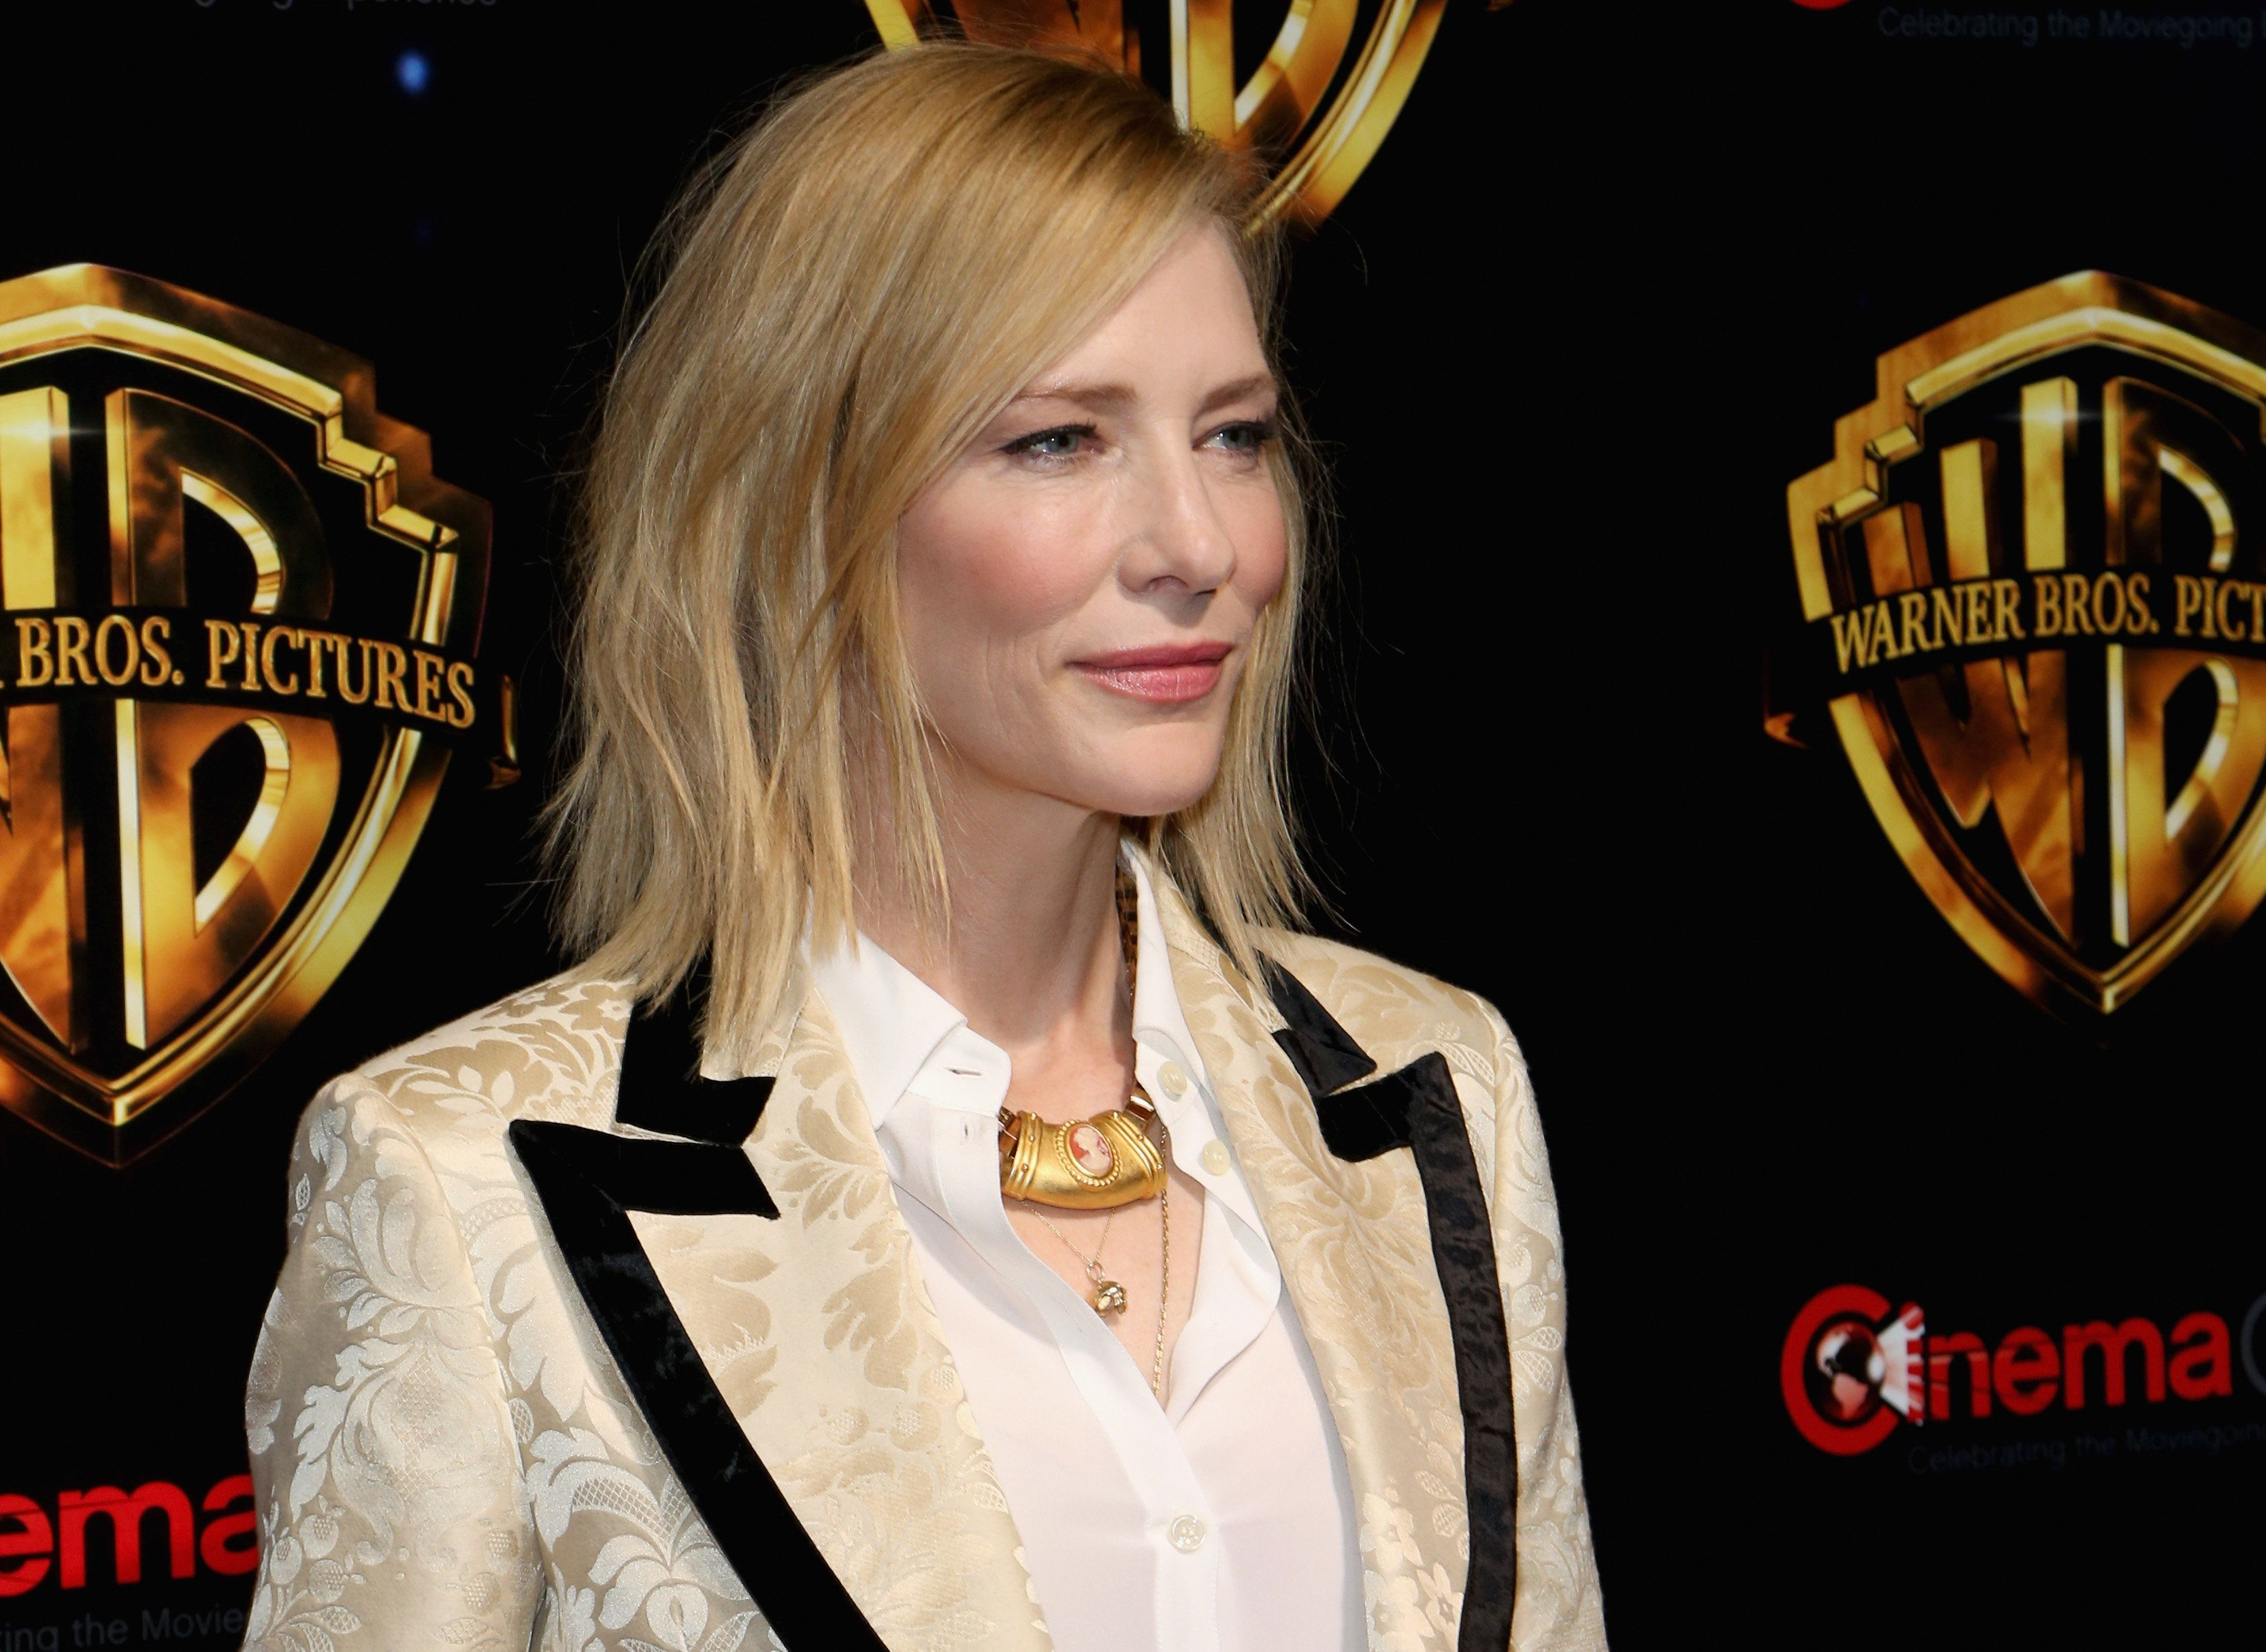 Cate Blanchett Says Harvey Weinstein Acted Inappropriately Towards Her And Hopes He Goes To